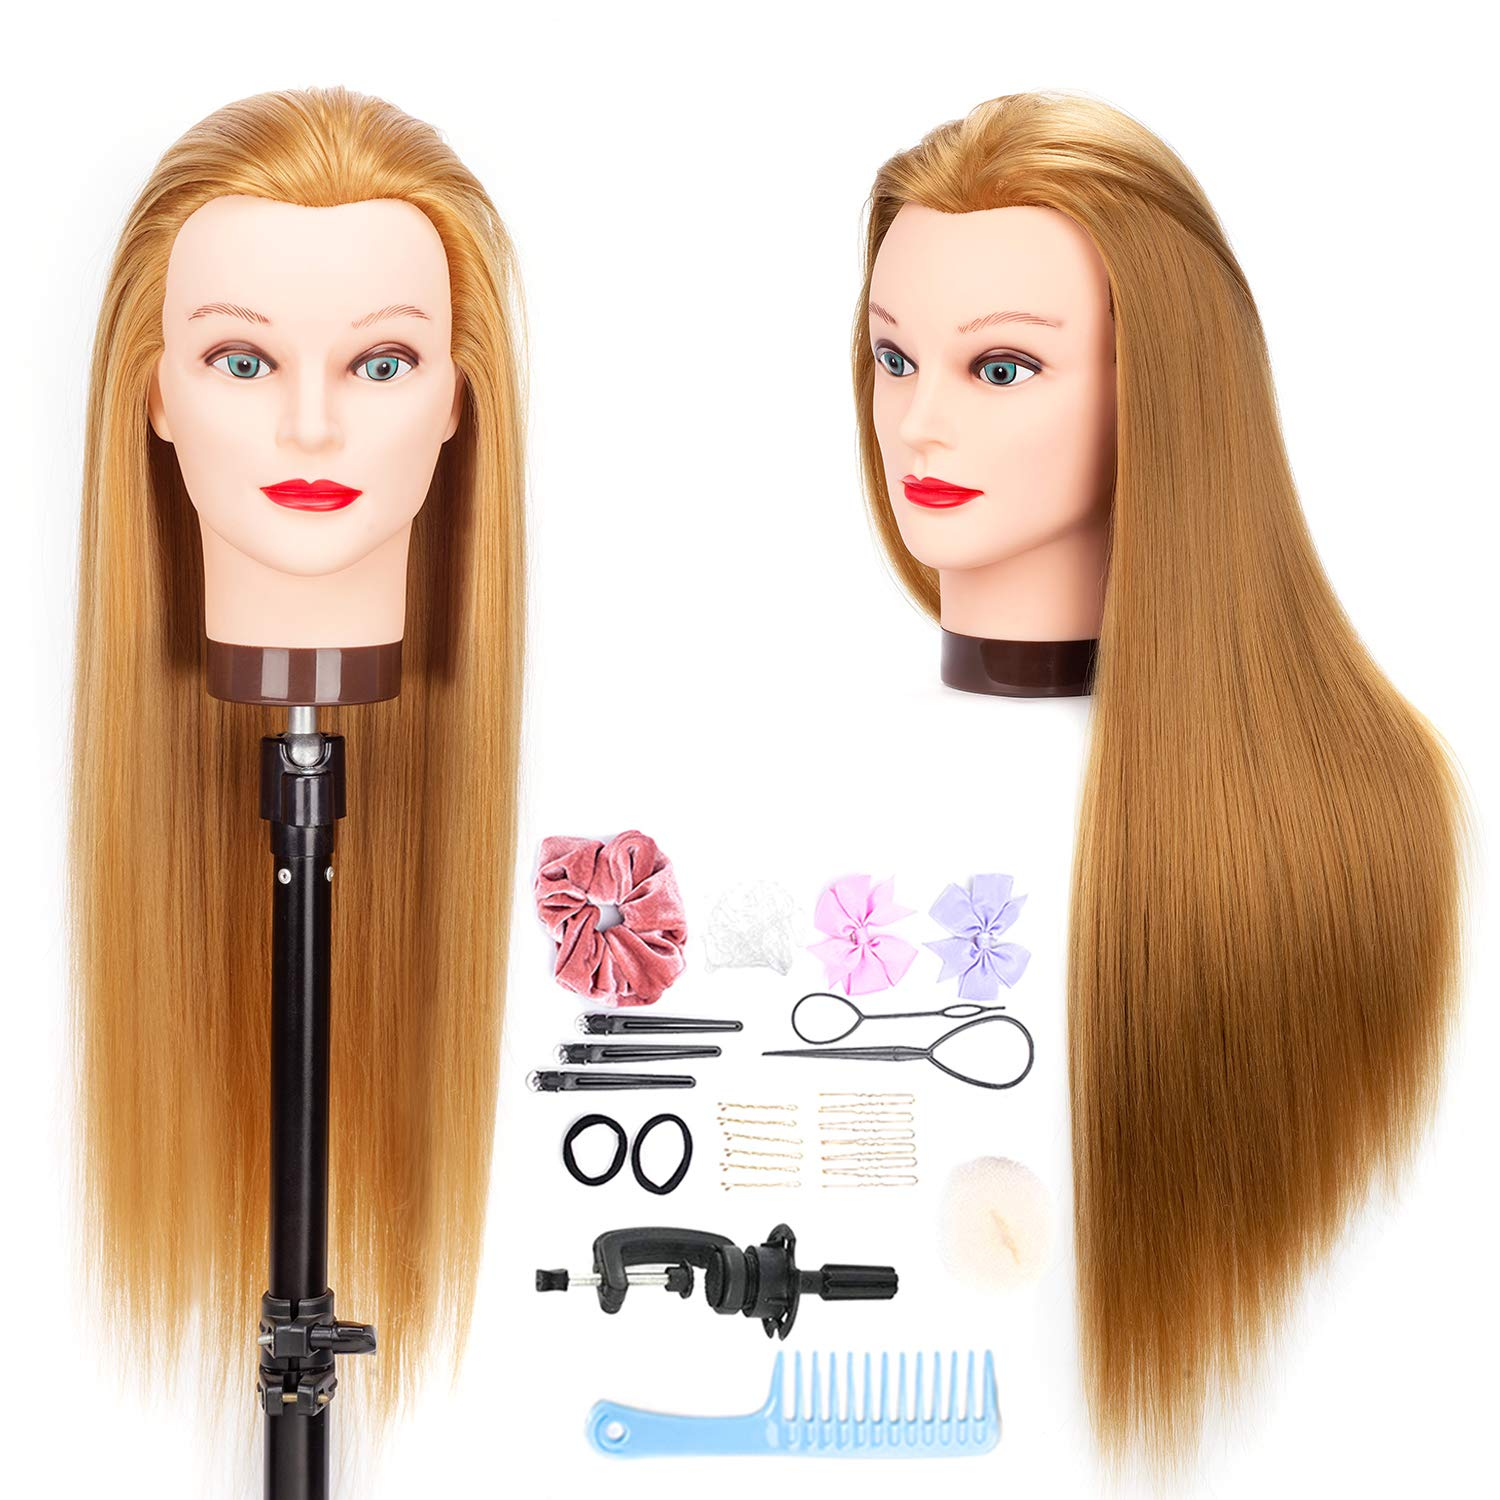 Amazon Com Mannequin Head Hair Styling Training Head Braiding Manikin Cosmetology Doll Head With Stand Synthetic Fiber Hair 26 Inches Hx2701 Beauty